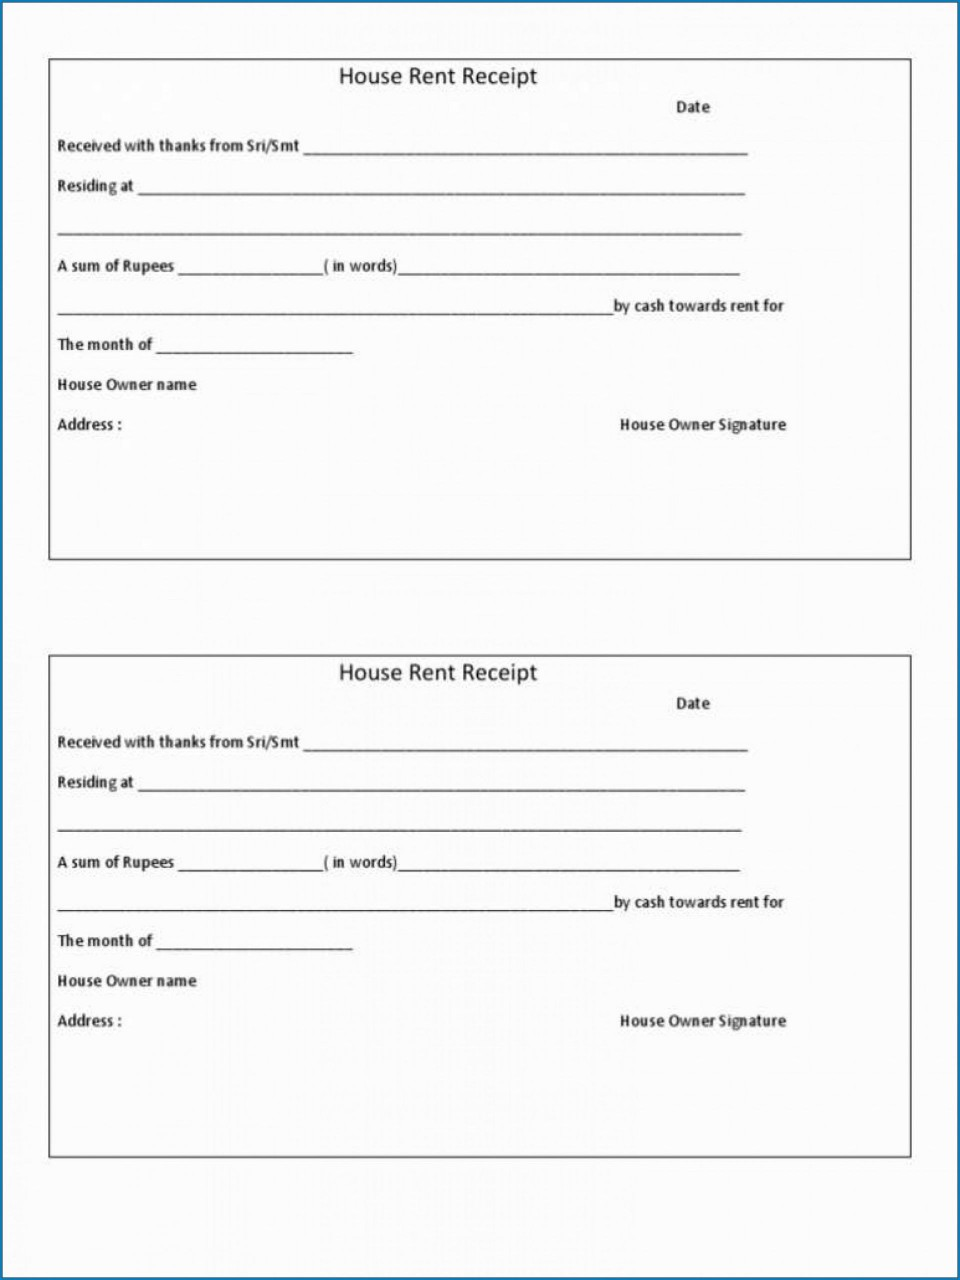 009 Stirring House Rent Receipt Sample Doc Design  Template India Bill Format Word Document Pdf Download960